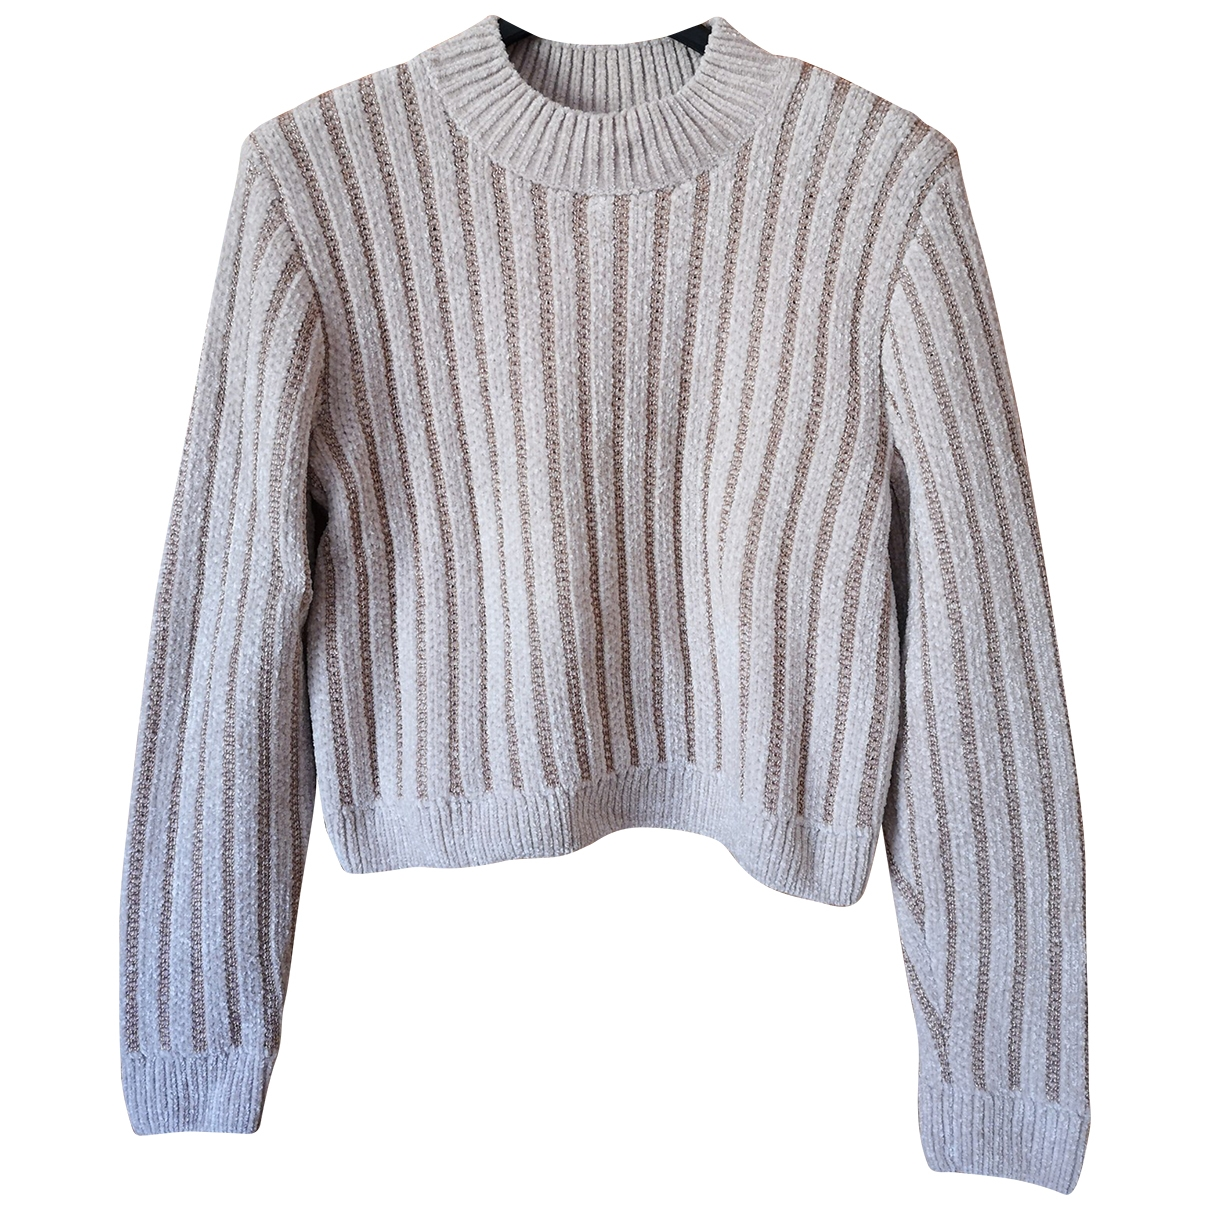 & Other Stories \N Pullover in Polyester